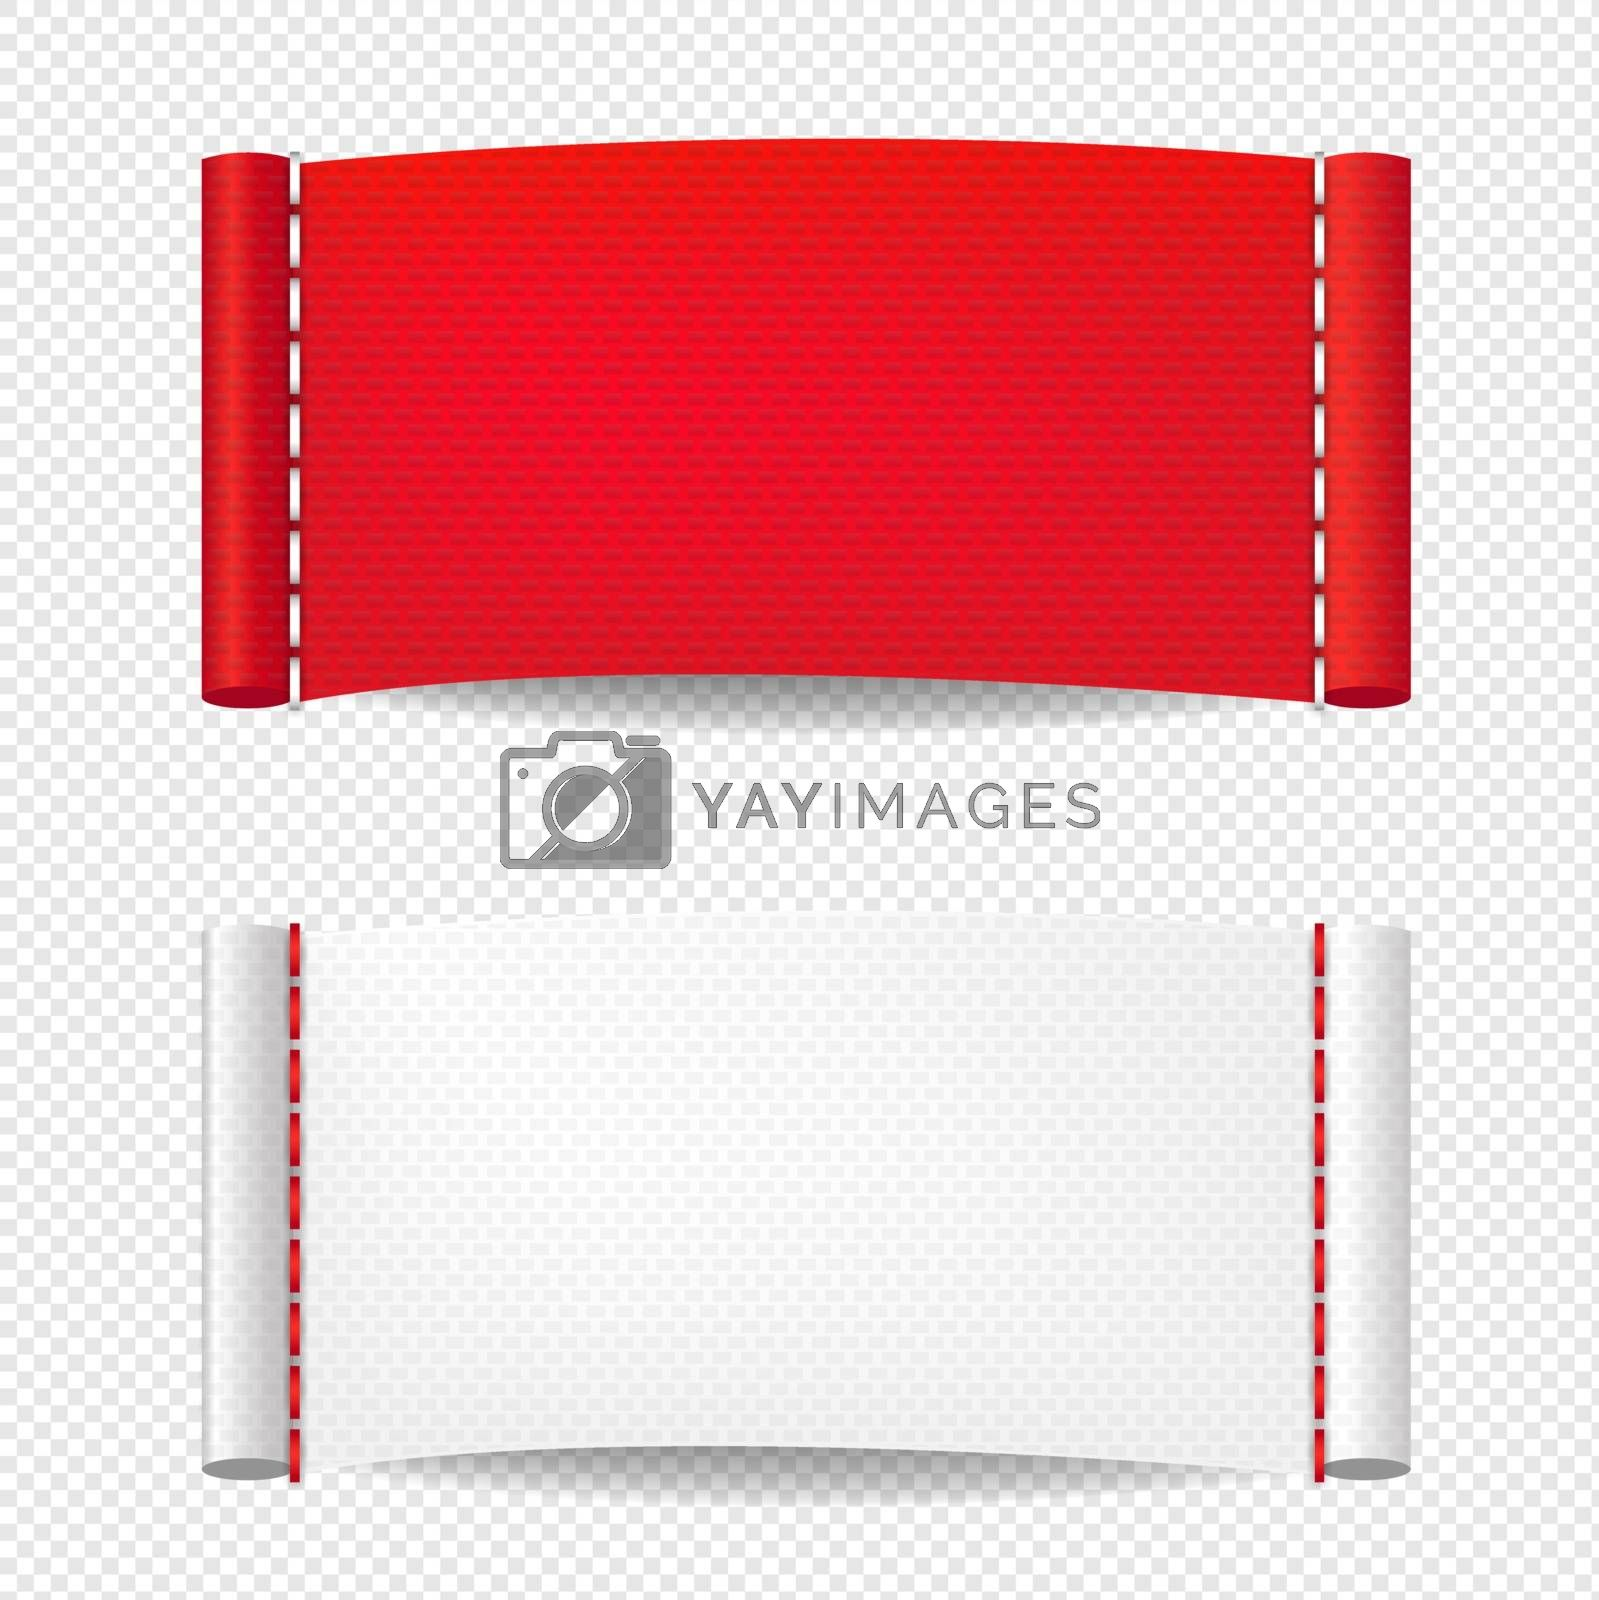 Clothing Label Isolated Transparent Background With Gradient Mesh, Vector Illustration